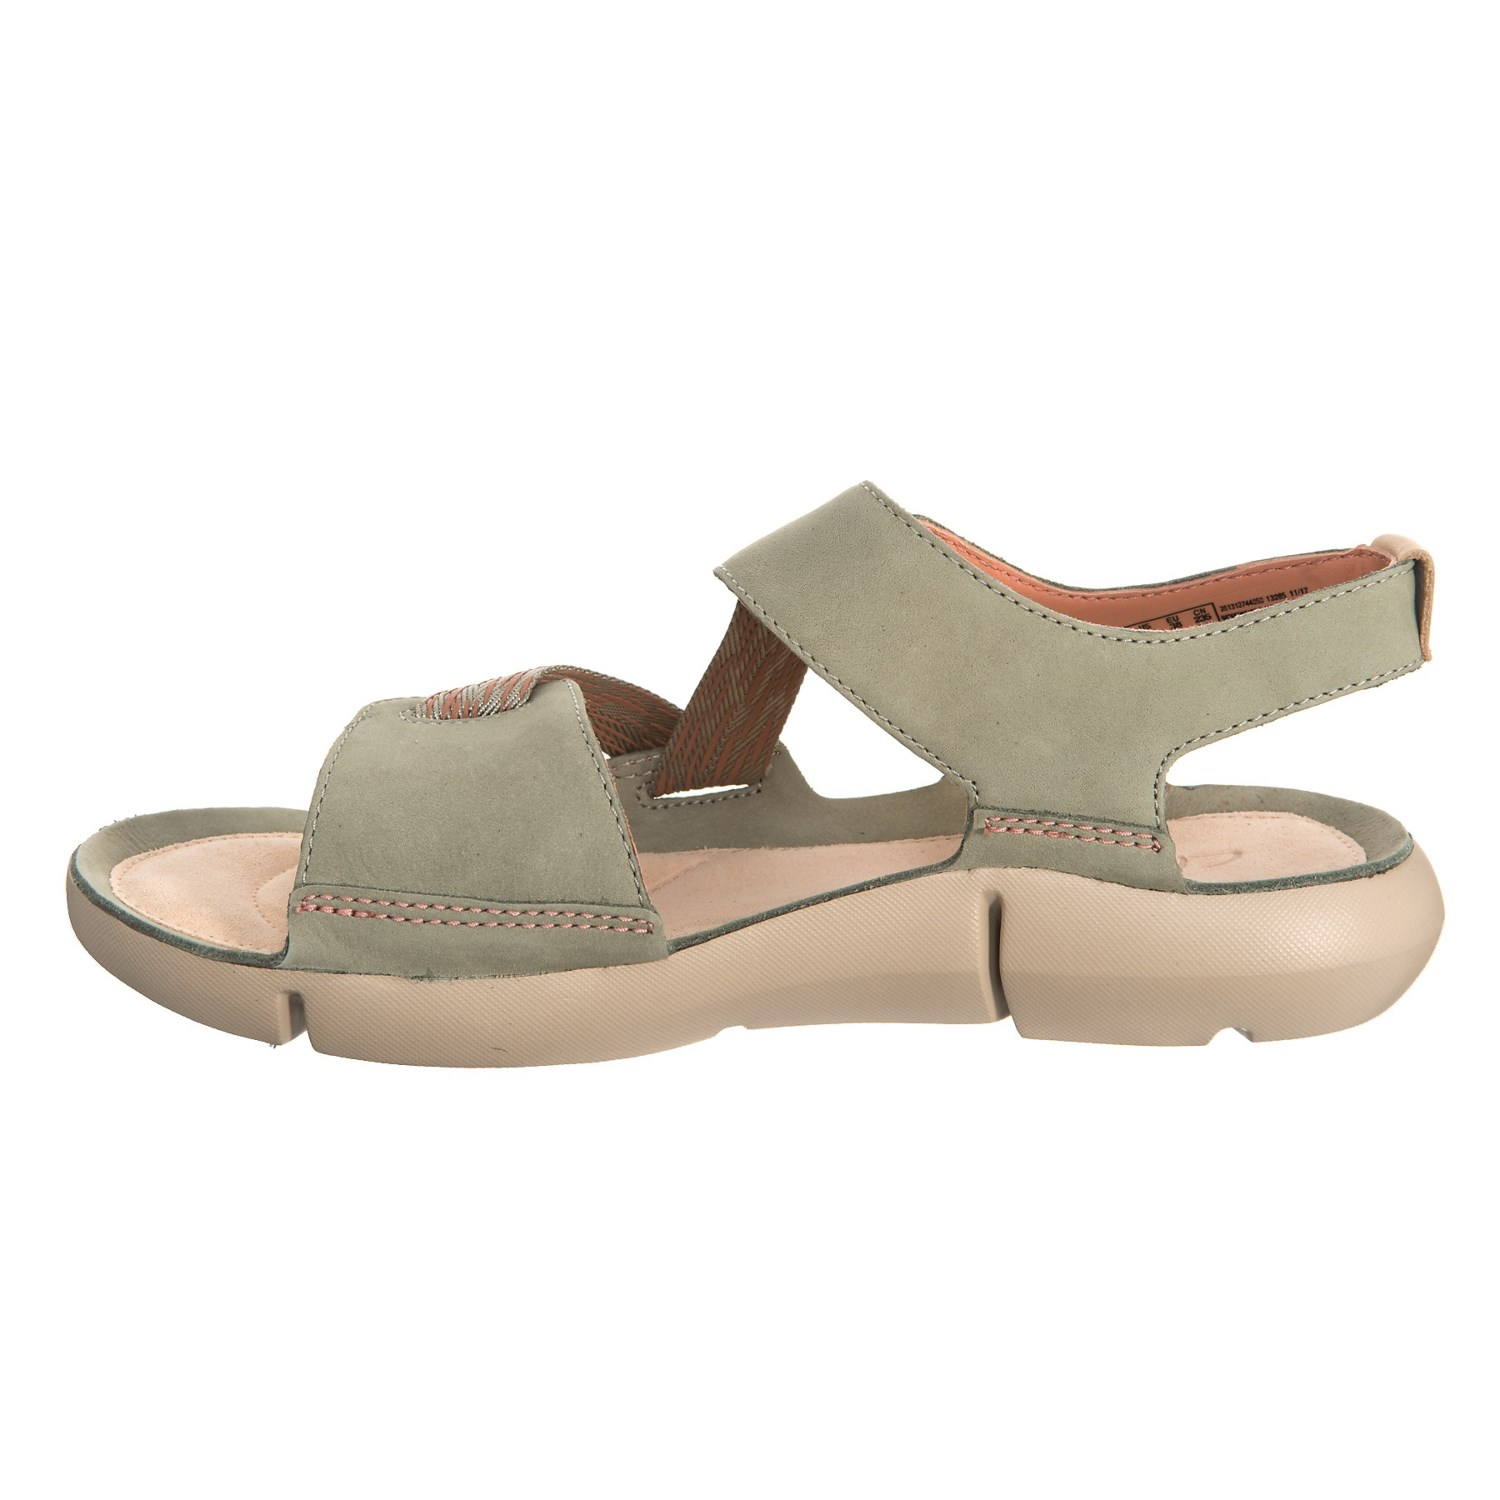 81ea1f1cce99c Clarks Tri Clover Sandals (For Women) - Save 60%